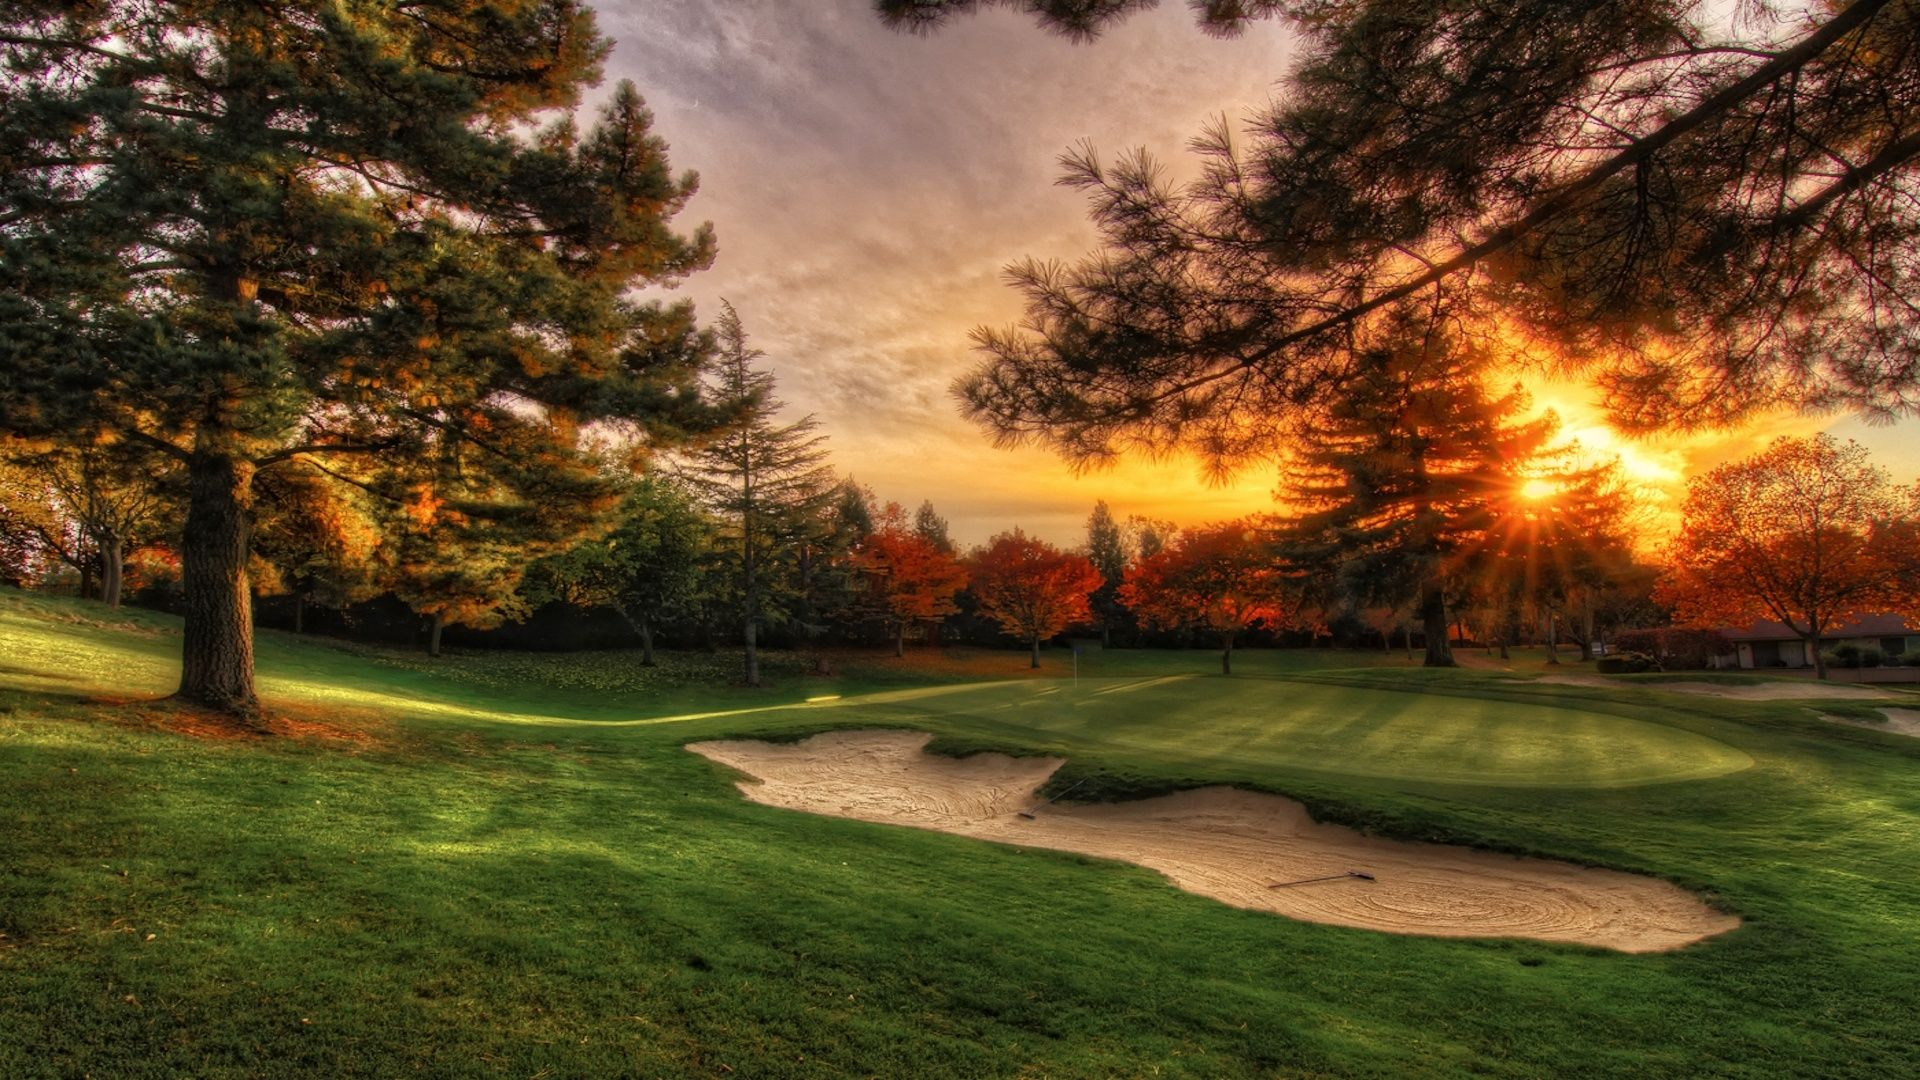 golf course hd wallpaper golf course pictures cool wallpapers